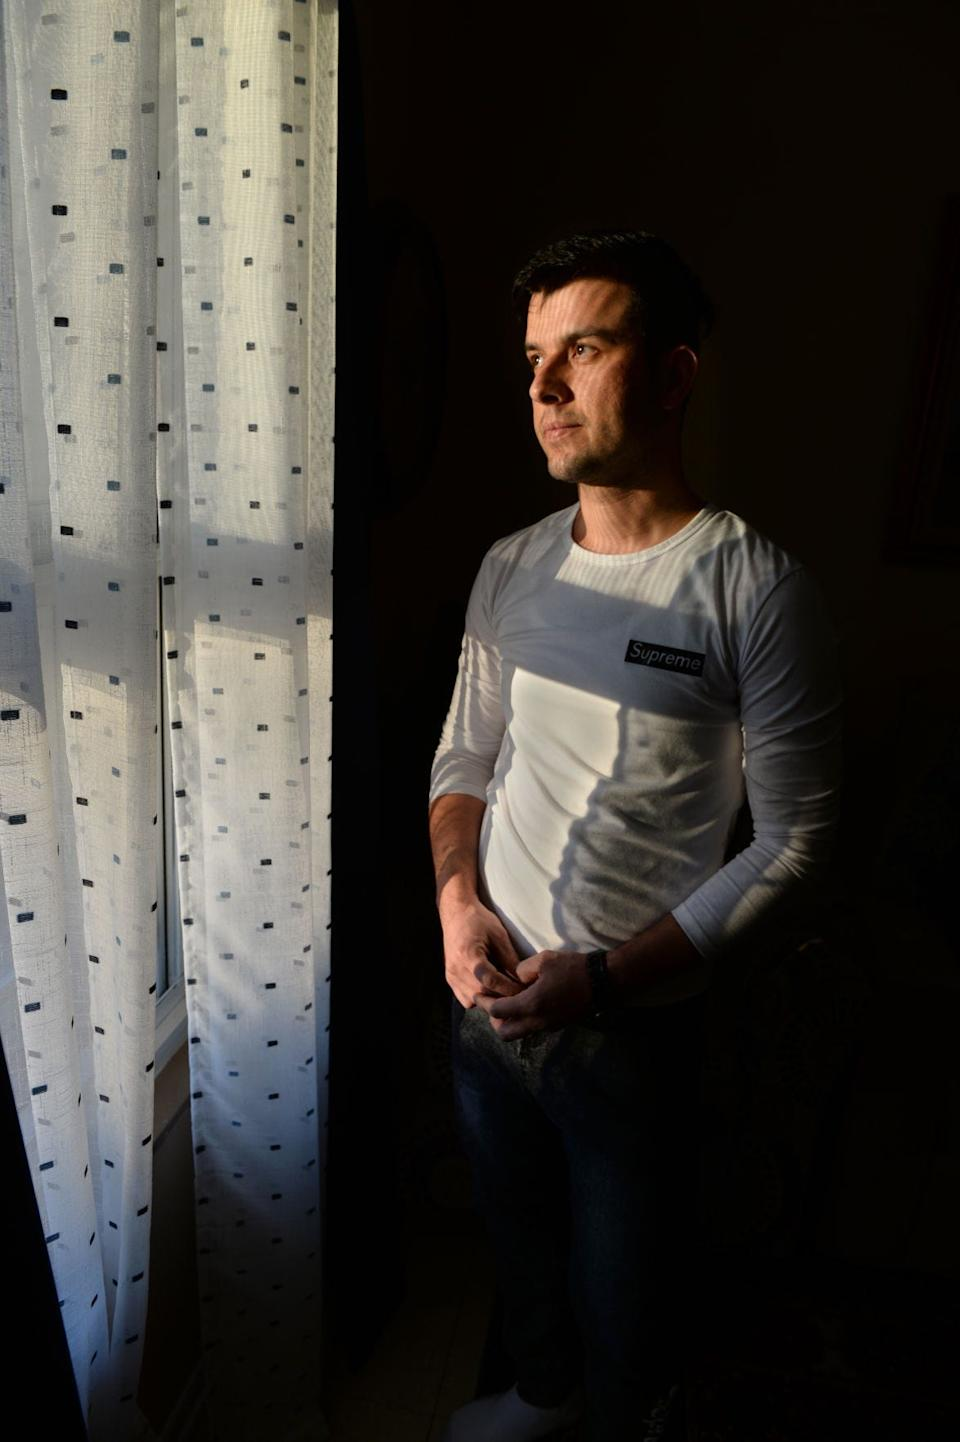 Najib Ahmad Bakhtari, a refugee from Afghanistan, found safety in the West Virginia hills after leaving the unrest in his home country last year. He is one of three refugees the state accepted in 2019.